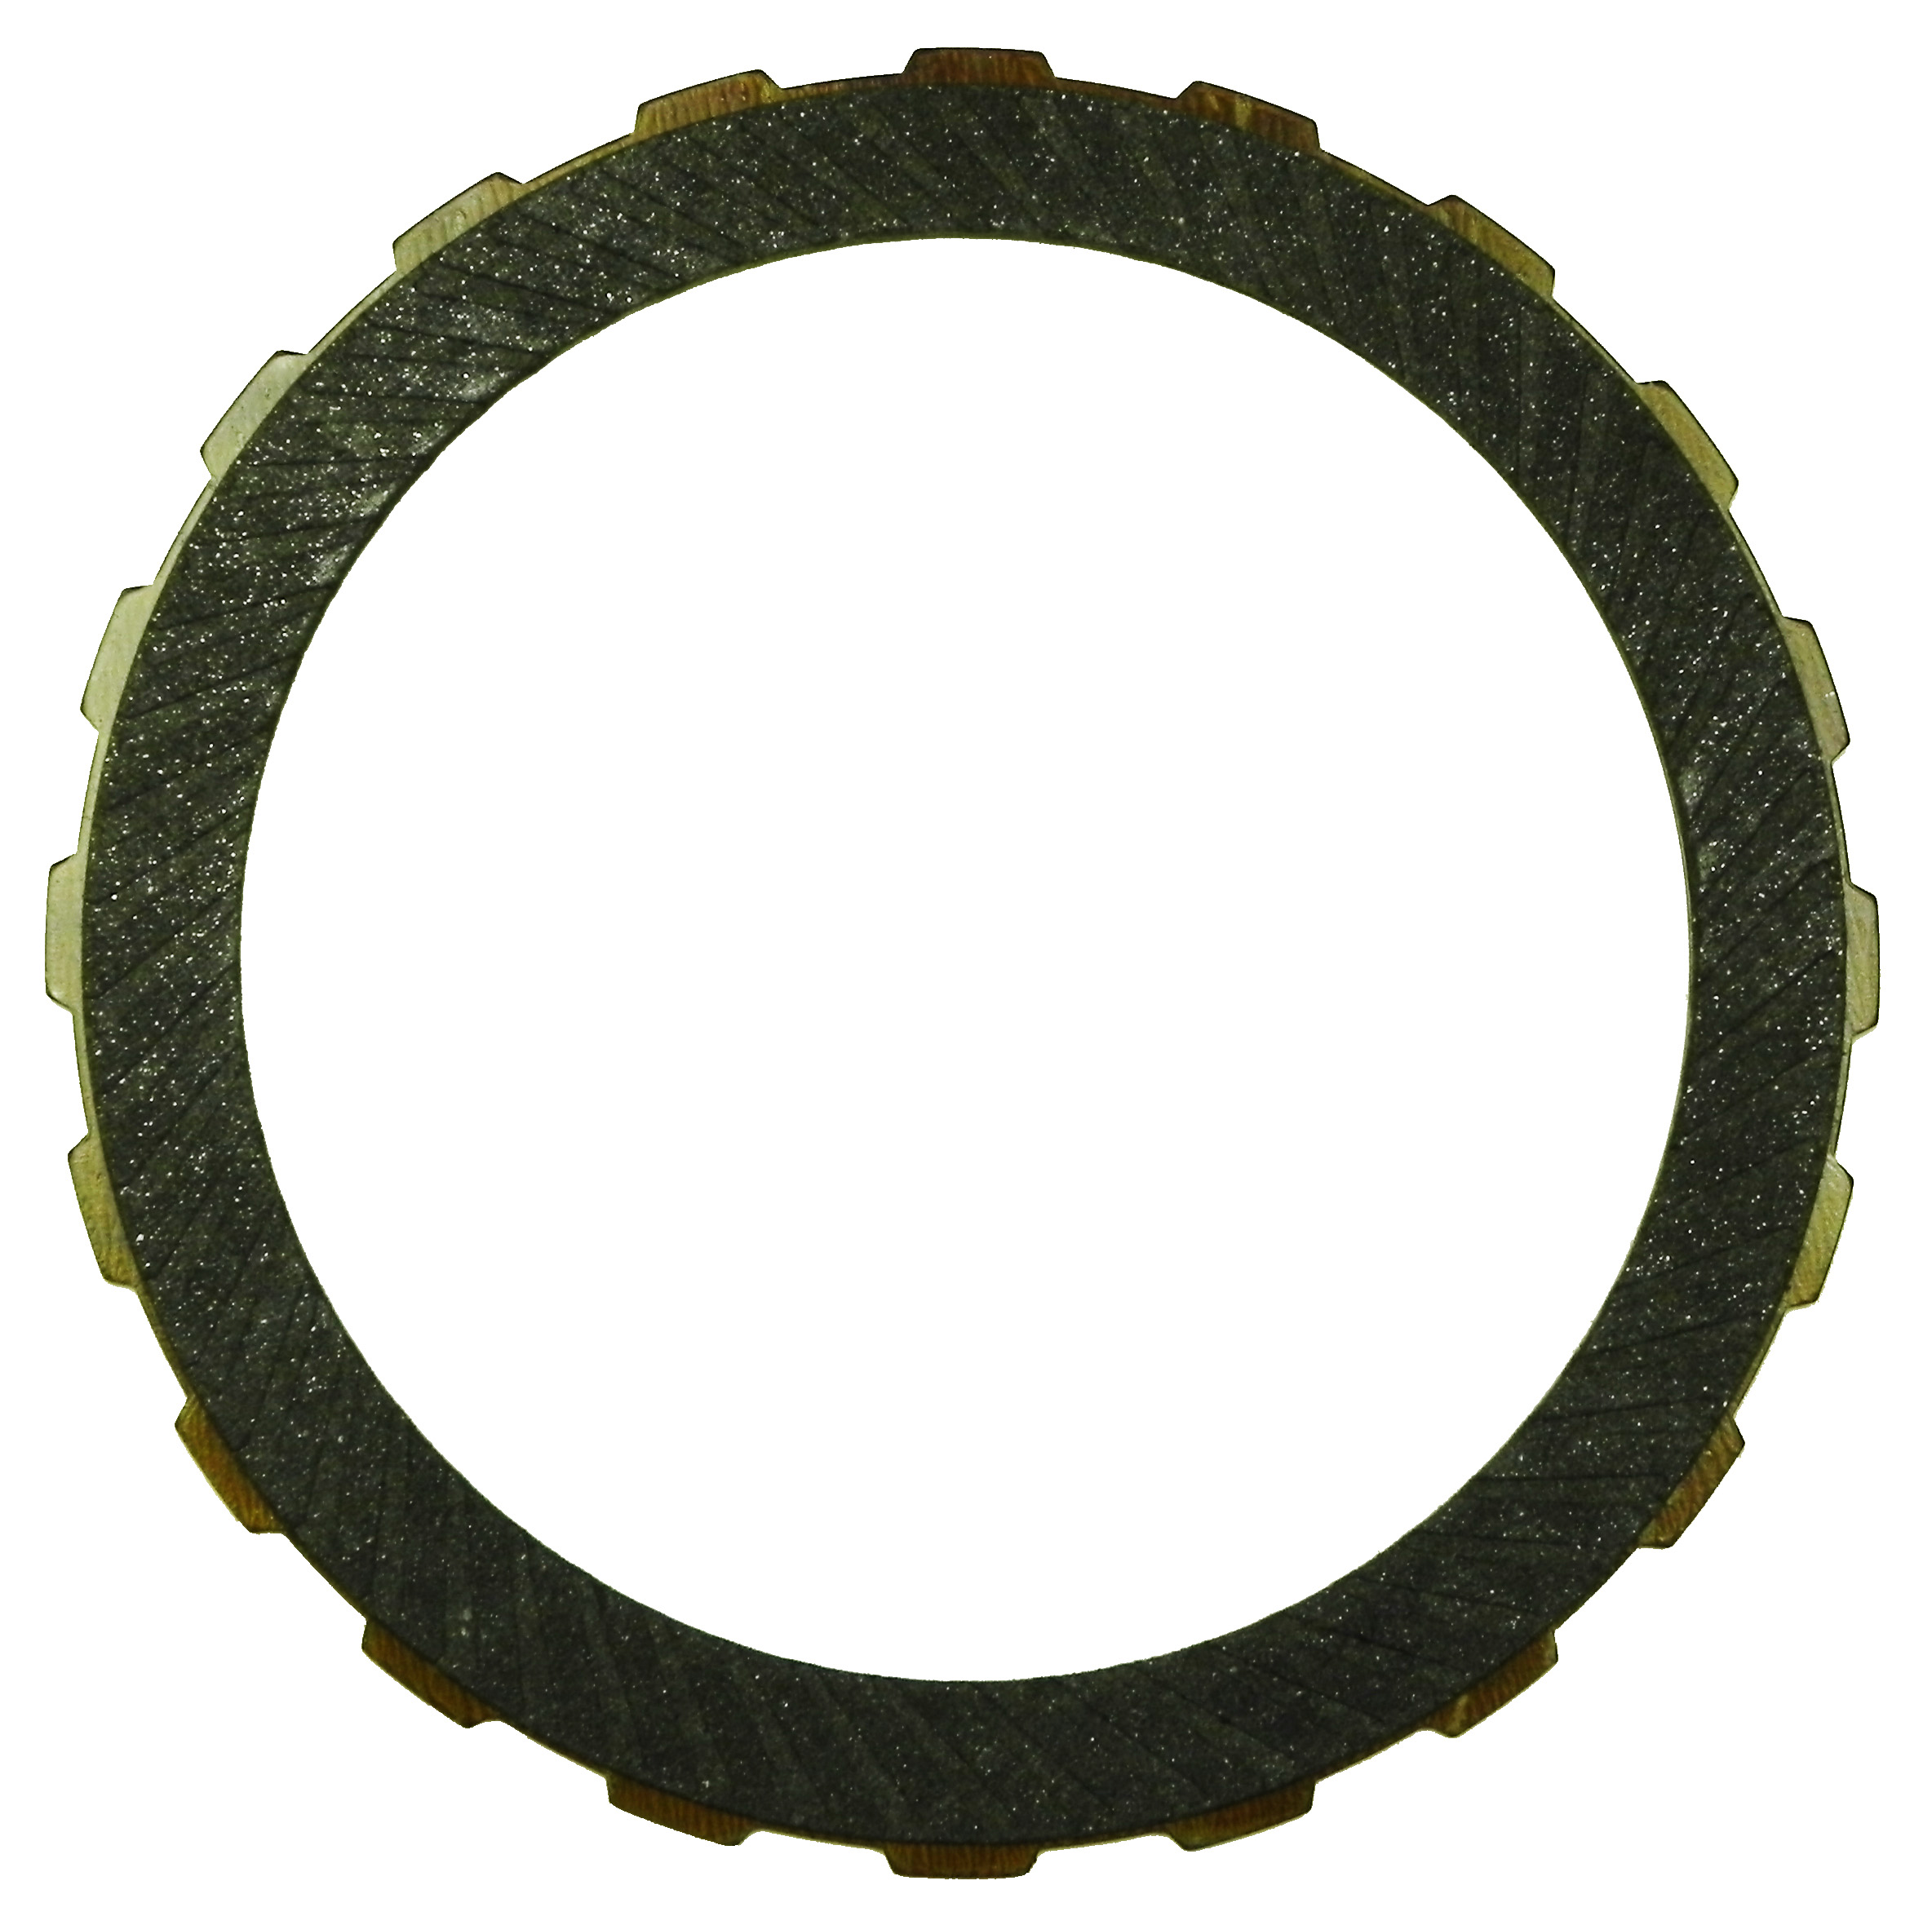 R560105 | 1999-ON Friction Clutch Plate High Energy High Reverse External Spline, Single Sided High Energy